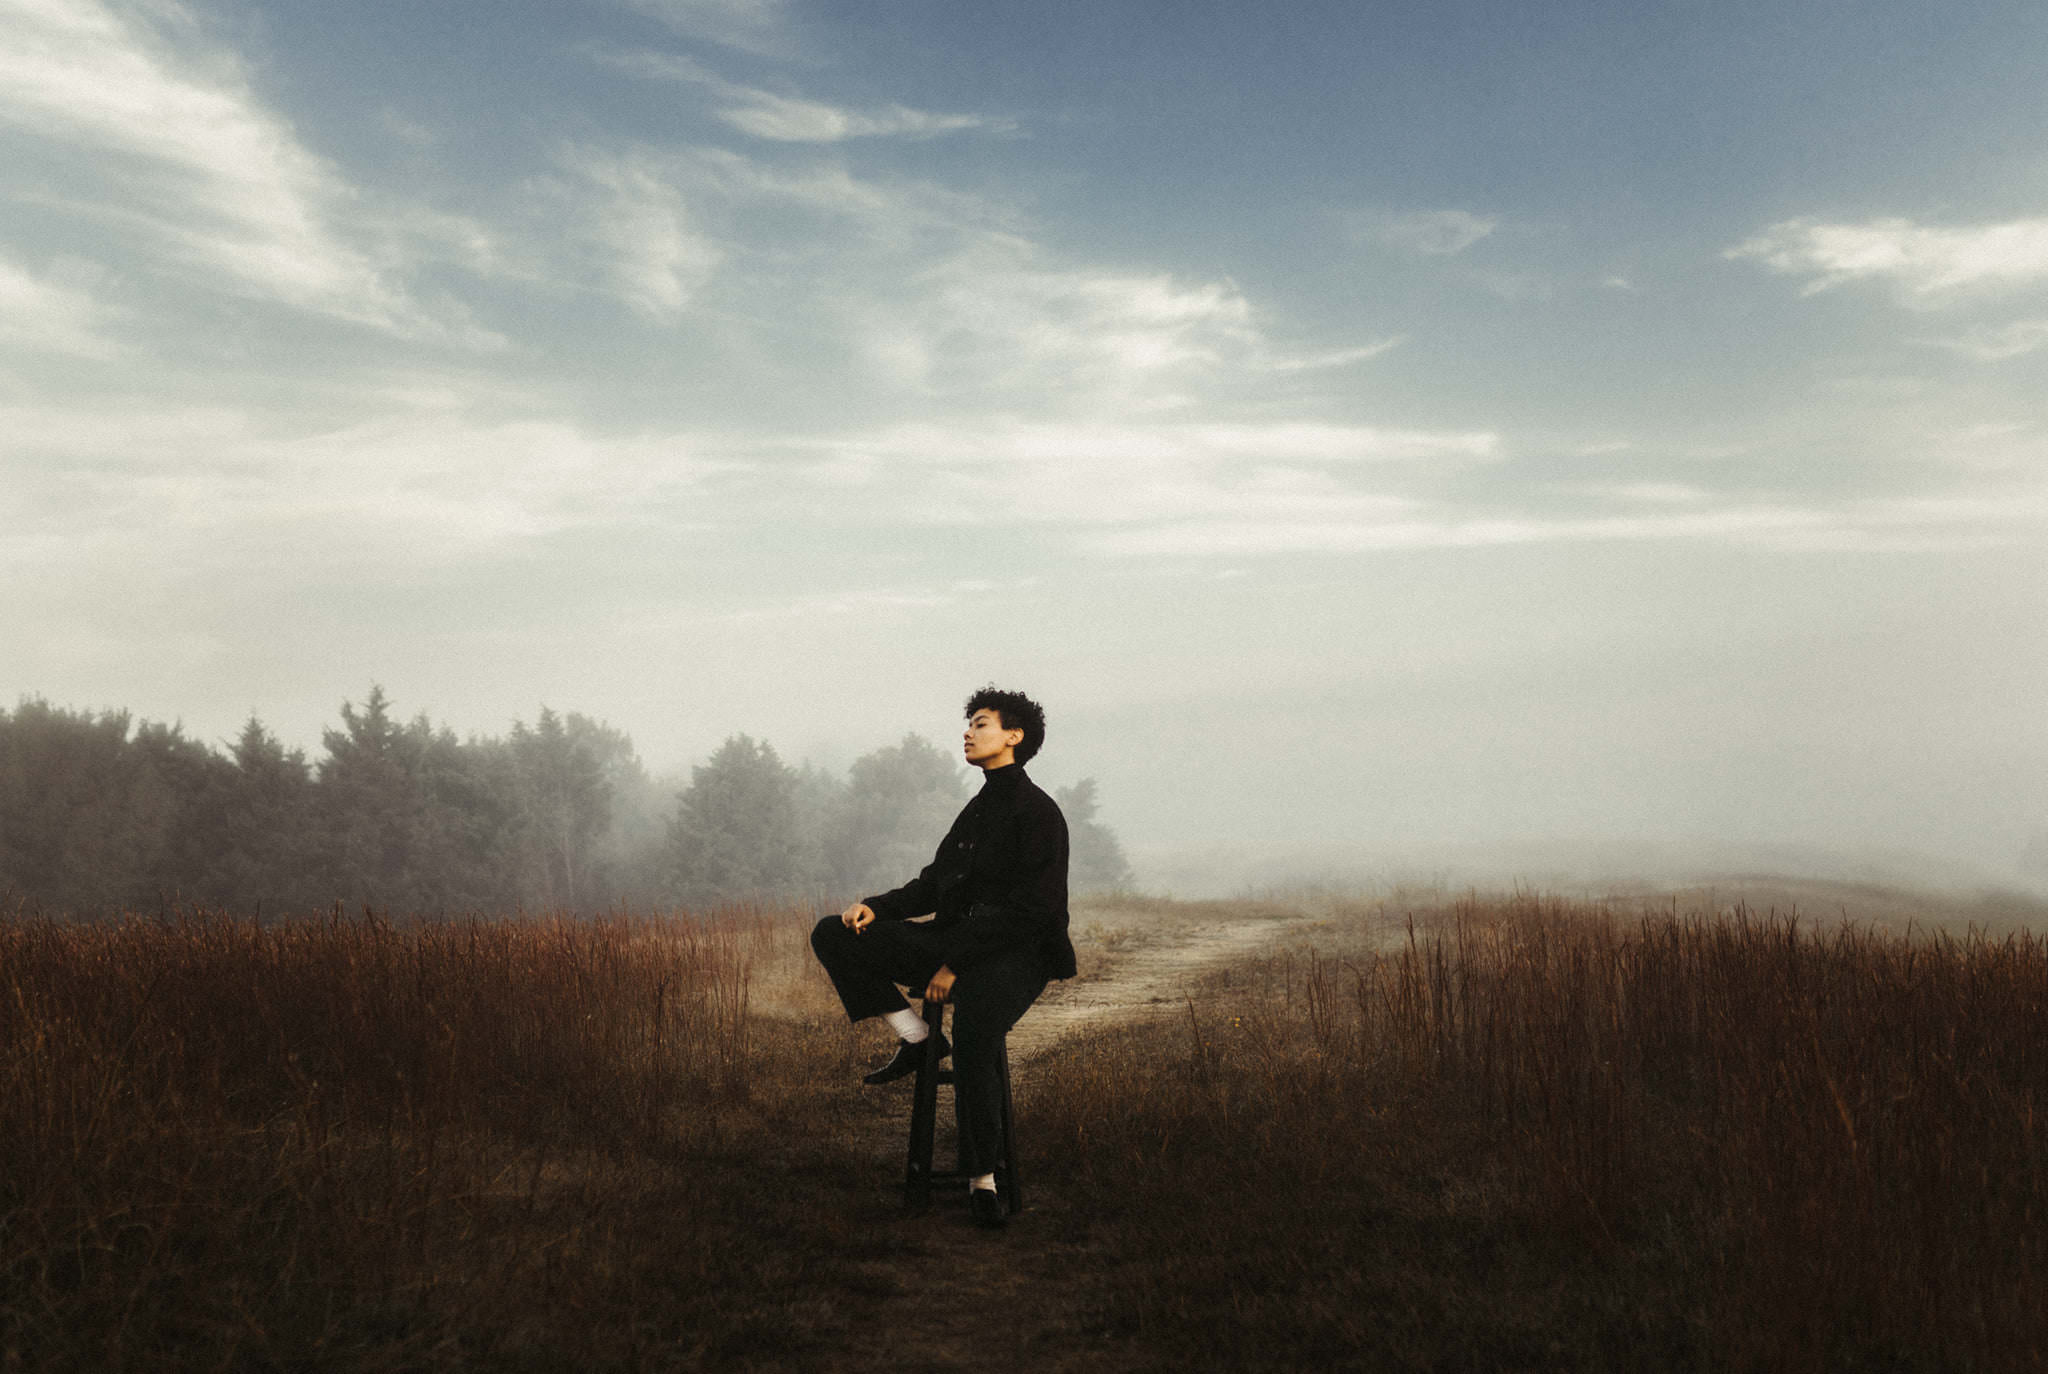 a black woman is sitting on a barstool in a field on a cloudy day